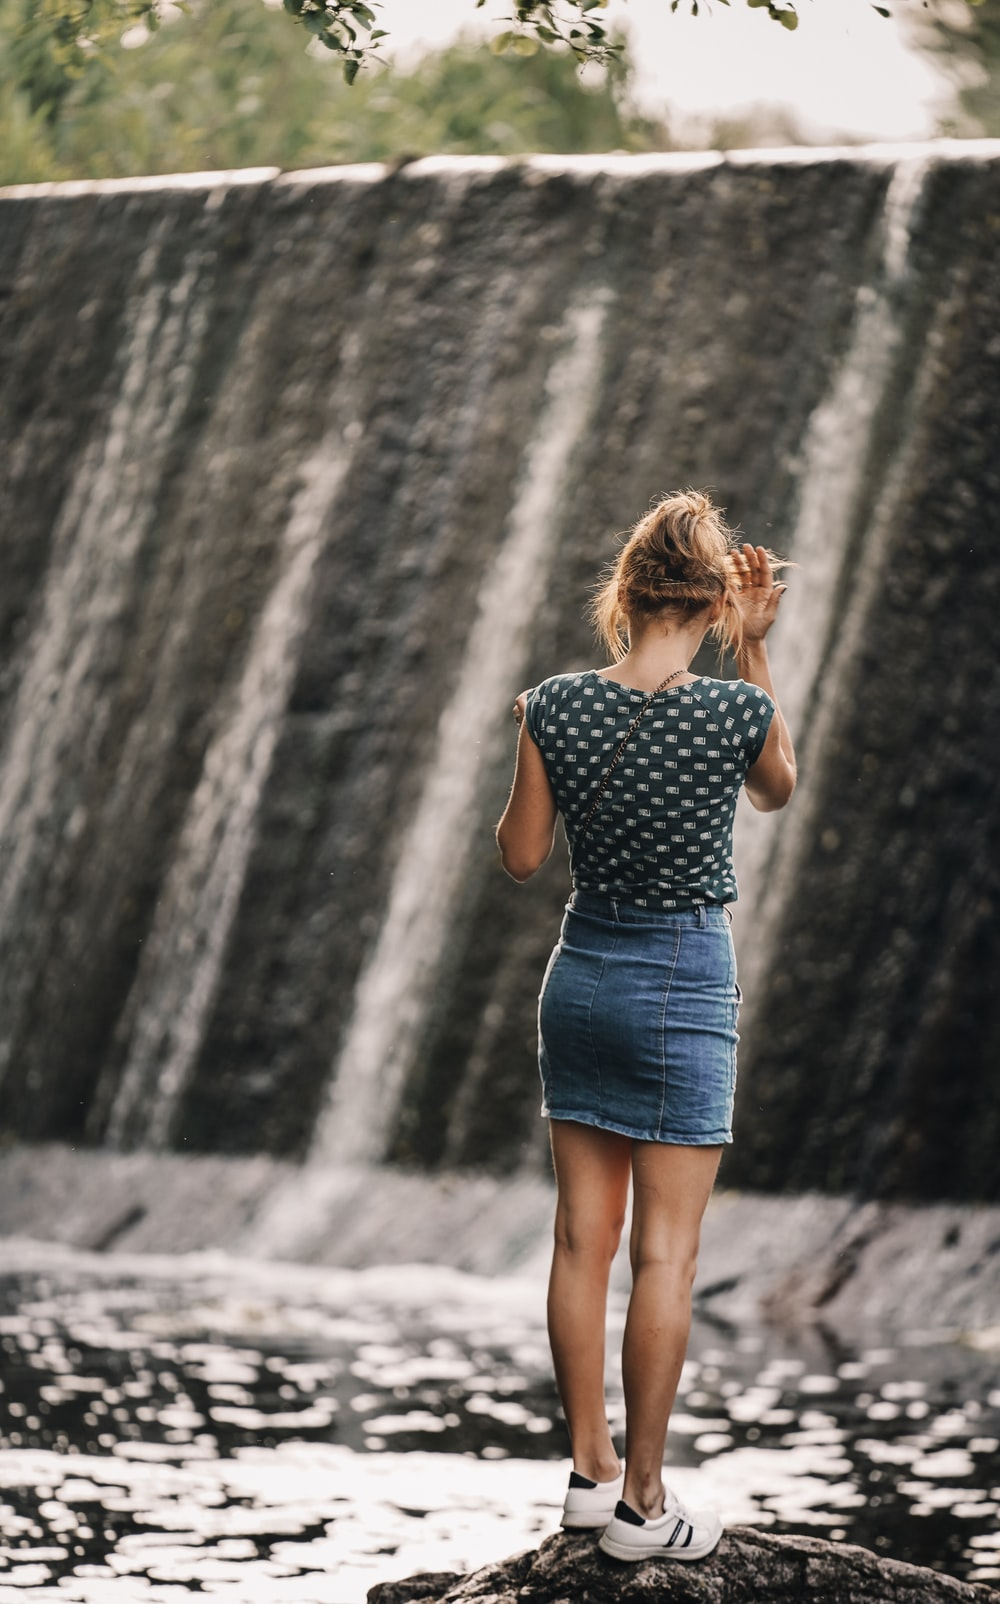 woman in blue and white polka dot dress standing in front of waterfalls during daytime